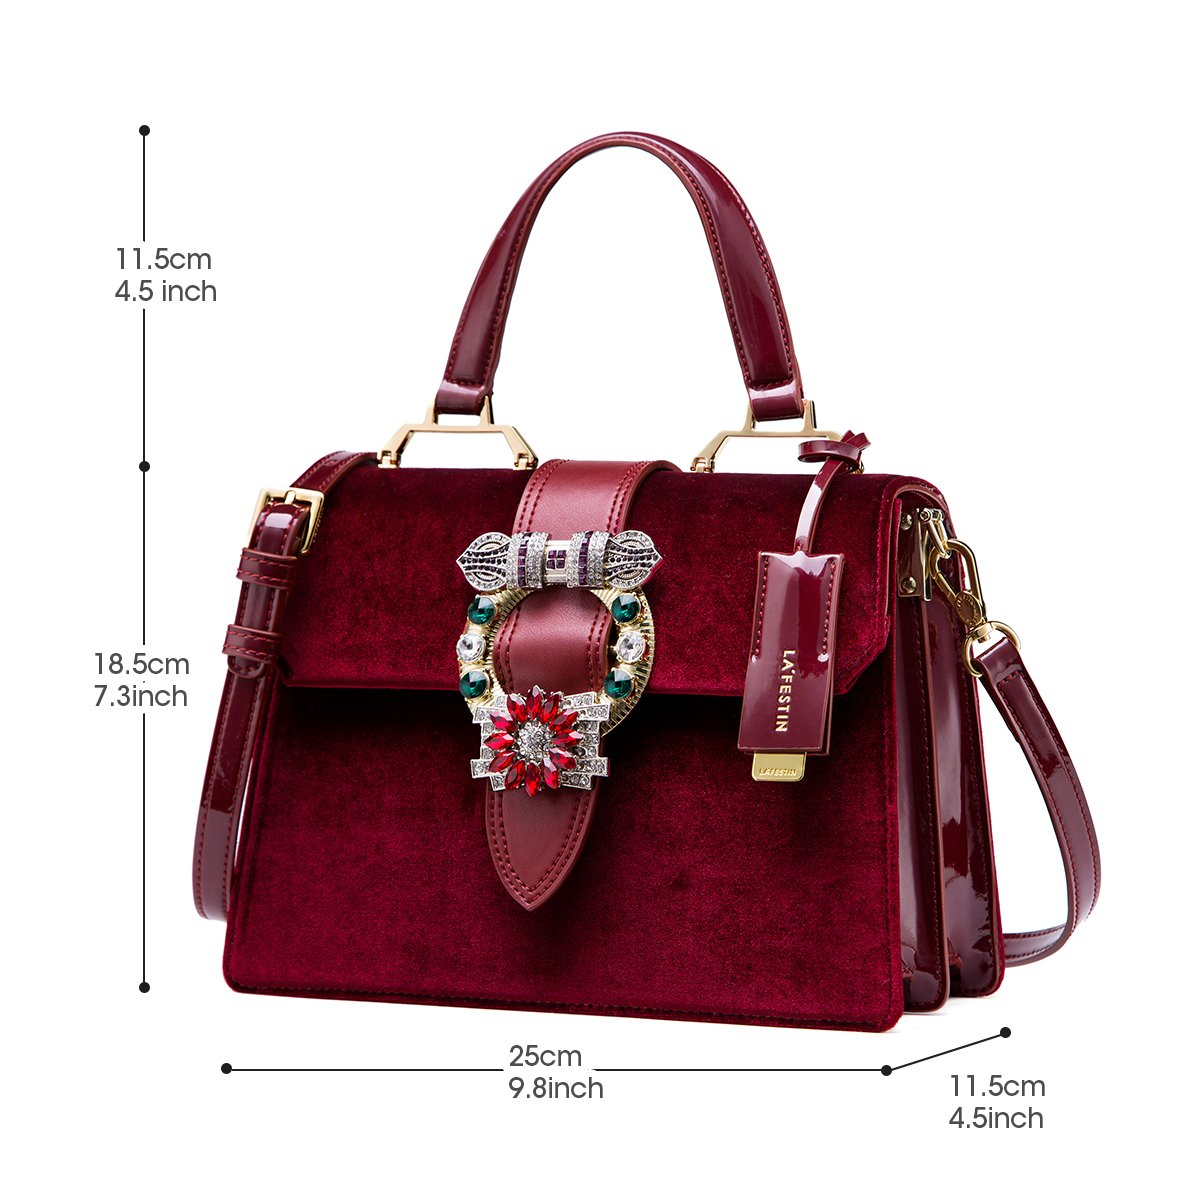 f527e36a9725 Amazon.com  LA FESTIN Vintage Burgundy Bags for Women Velvet Leather  Shoulder Purses with Jewels Red  LAFESTIN